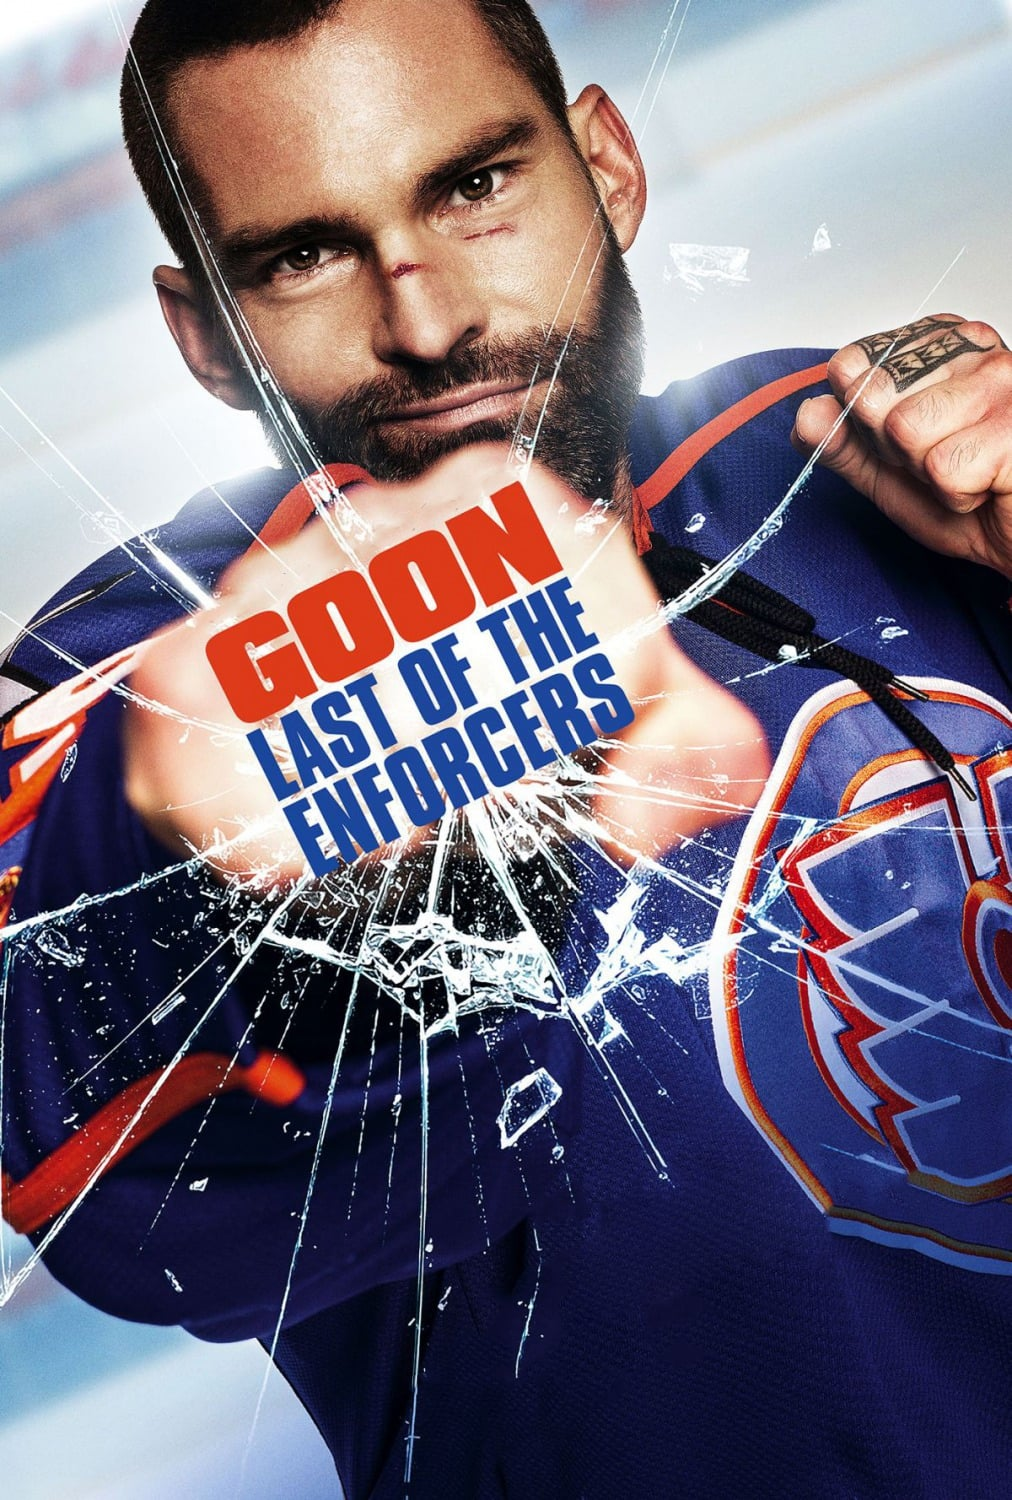 image for Goon: Last of the Enforcers